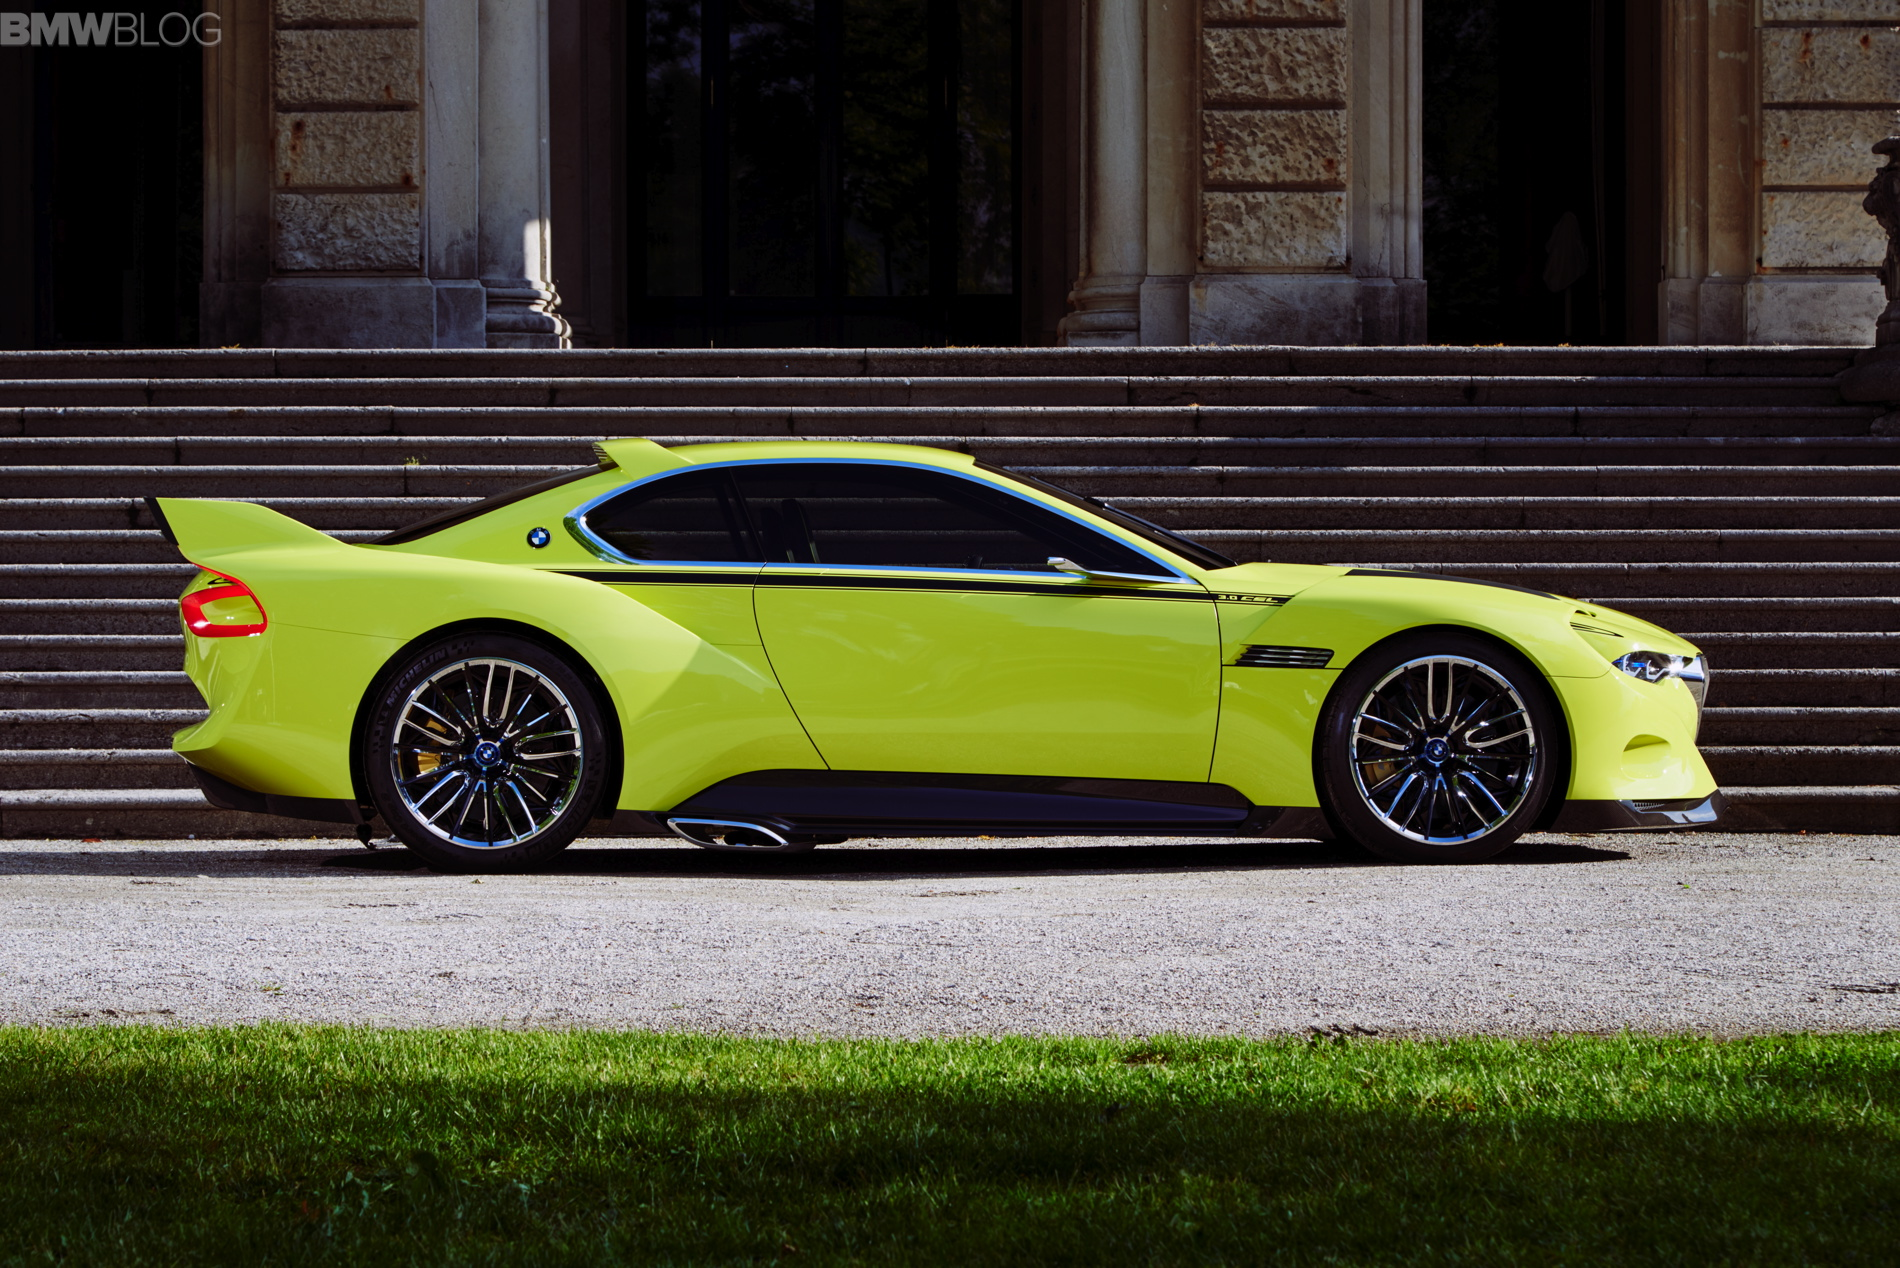 Bmw 3 0 Csl Hommage Photos From Concorso D Eleganza